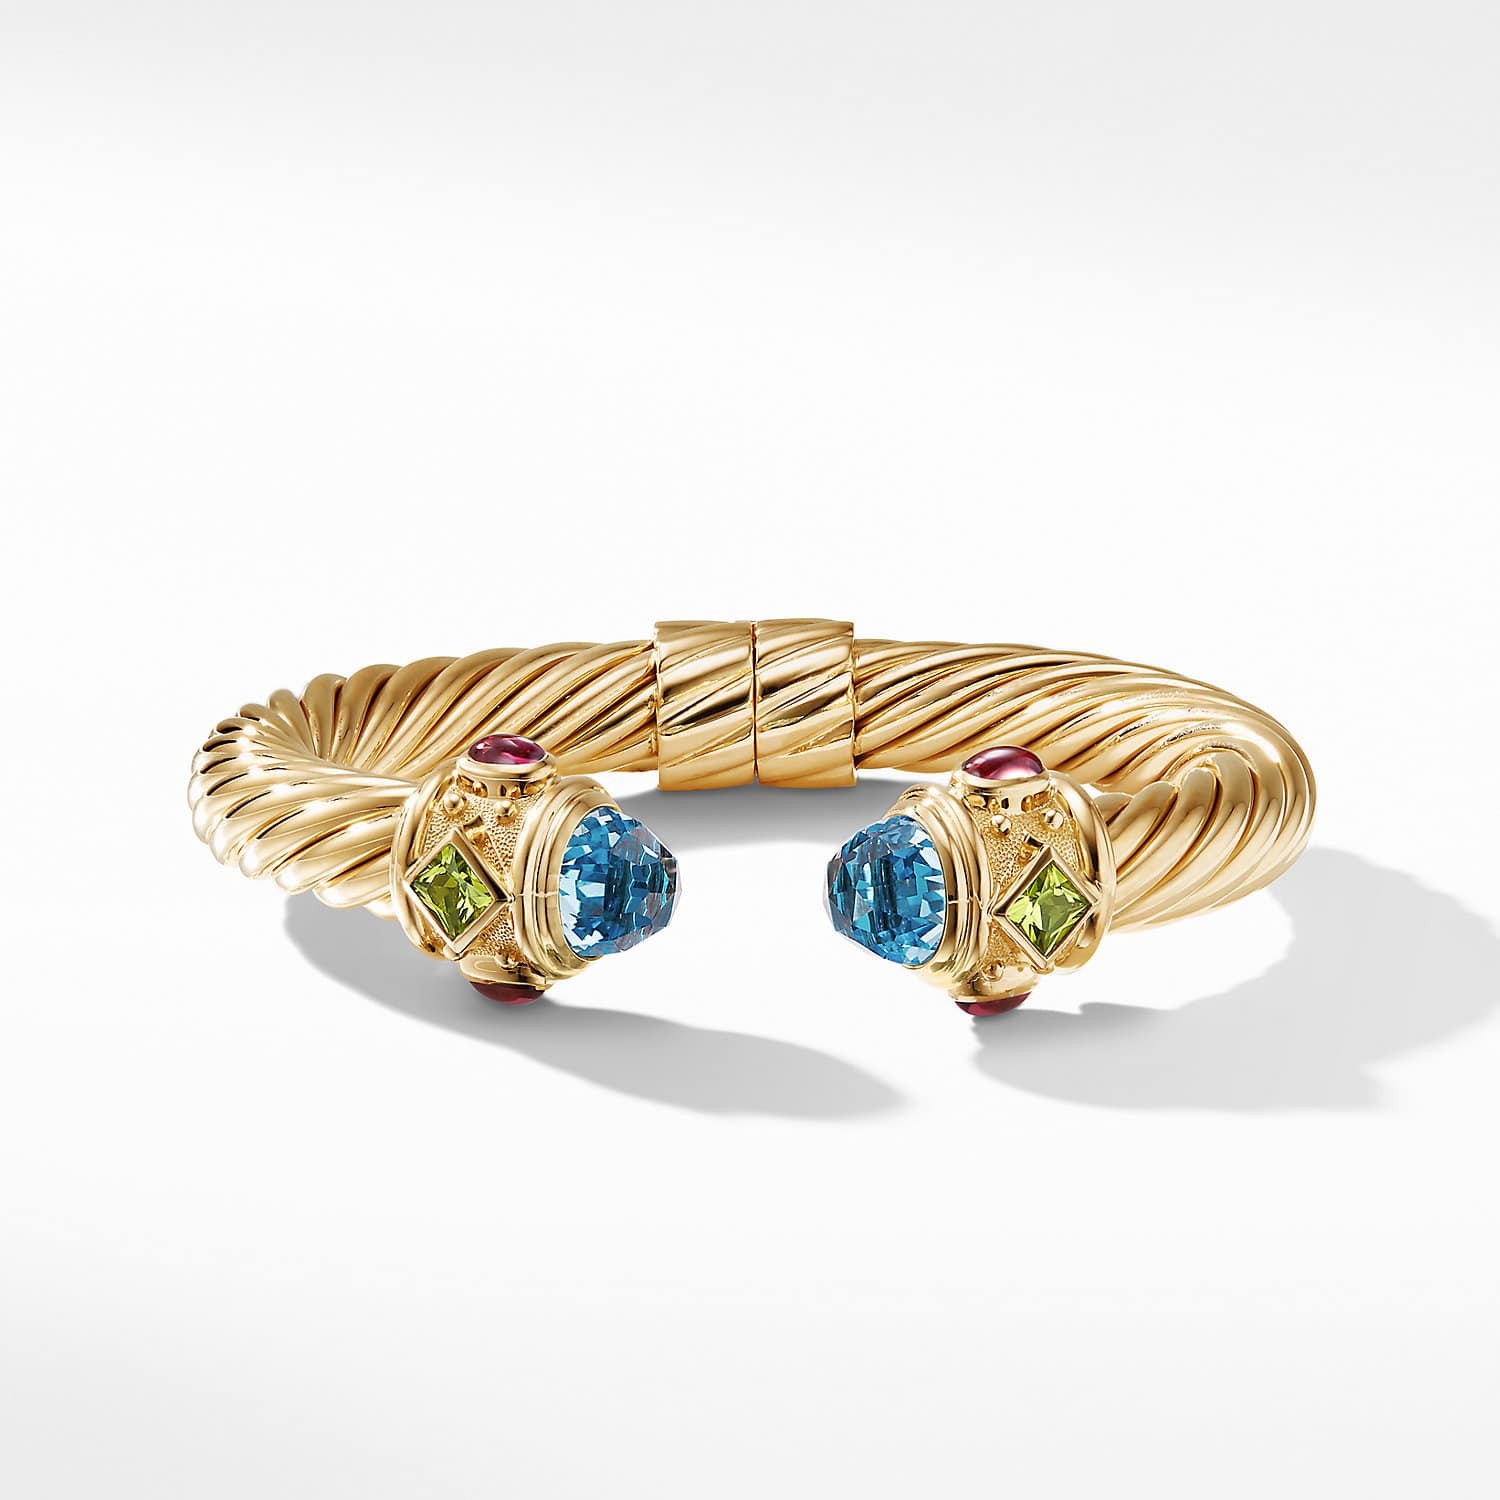 1c8b7d39c Renaissance Bracelet in 18K Gold with Blue Topaz, Peridot and Pink  Tourmaline Product Image